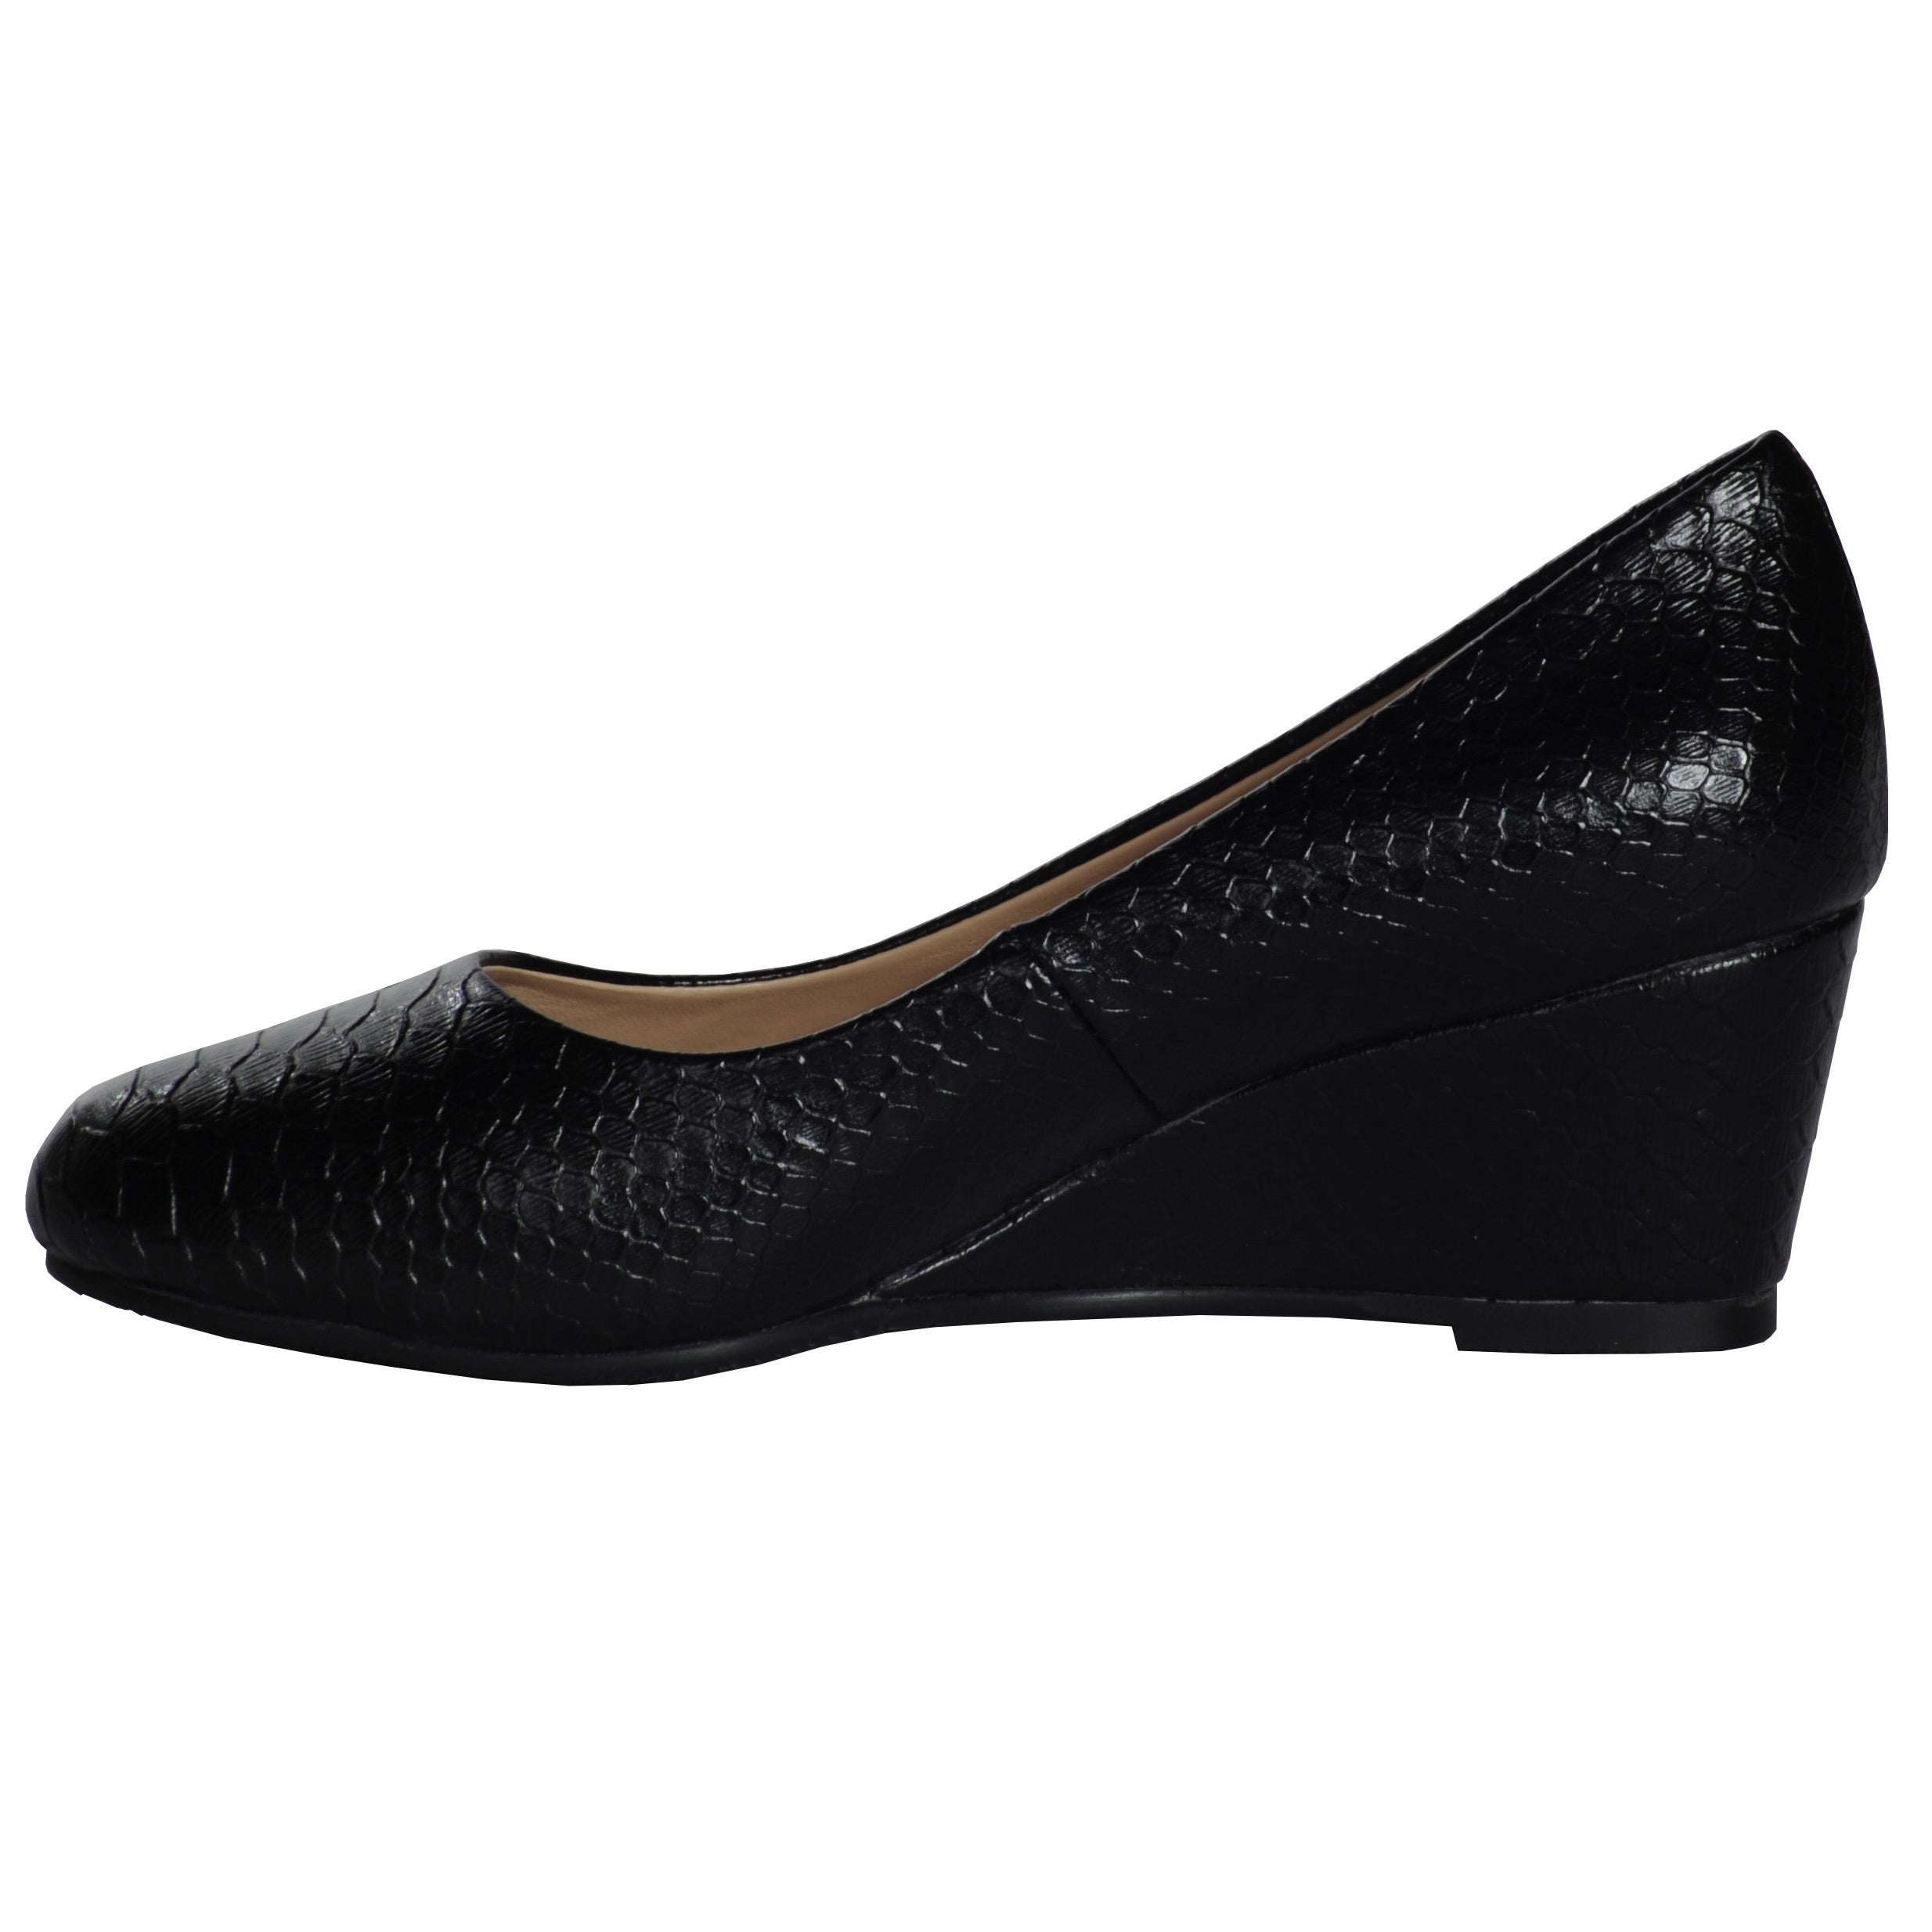 da28215adf7 Shop Ann Creek Women s  Venable  Wedge Pump Shoes - Free Shipping Today -  Overstock - 8553866